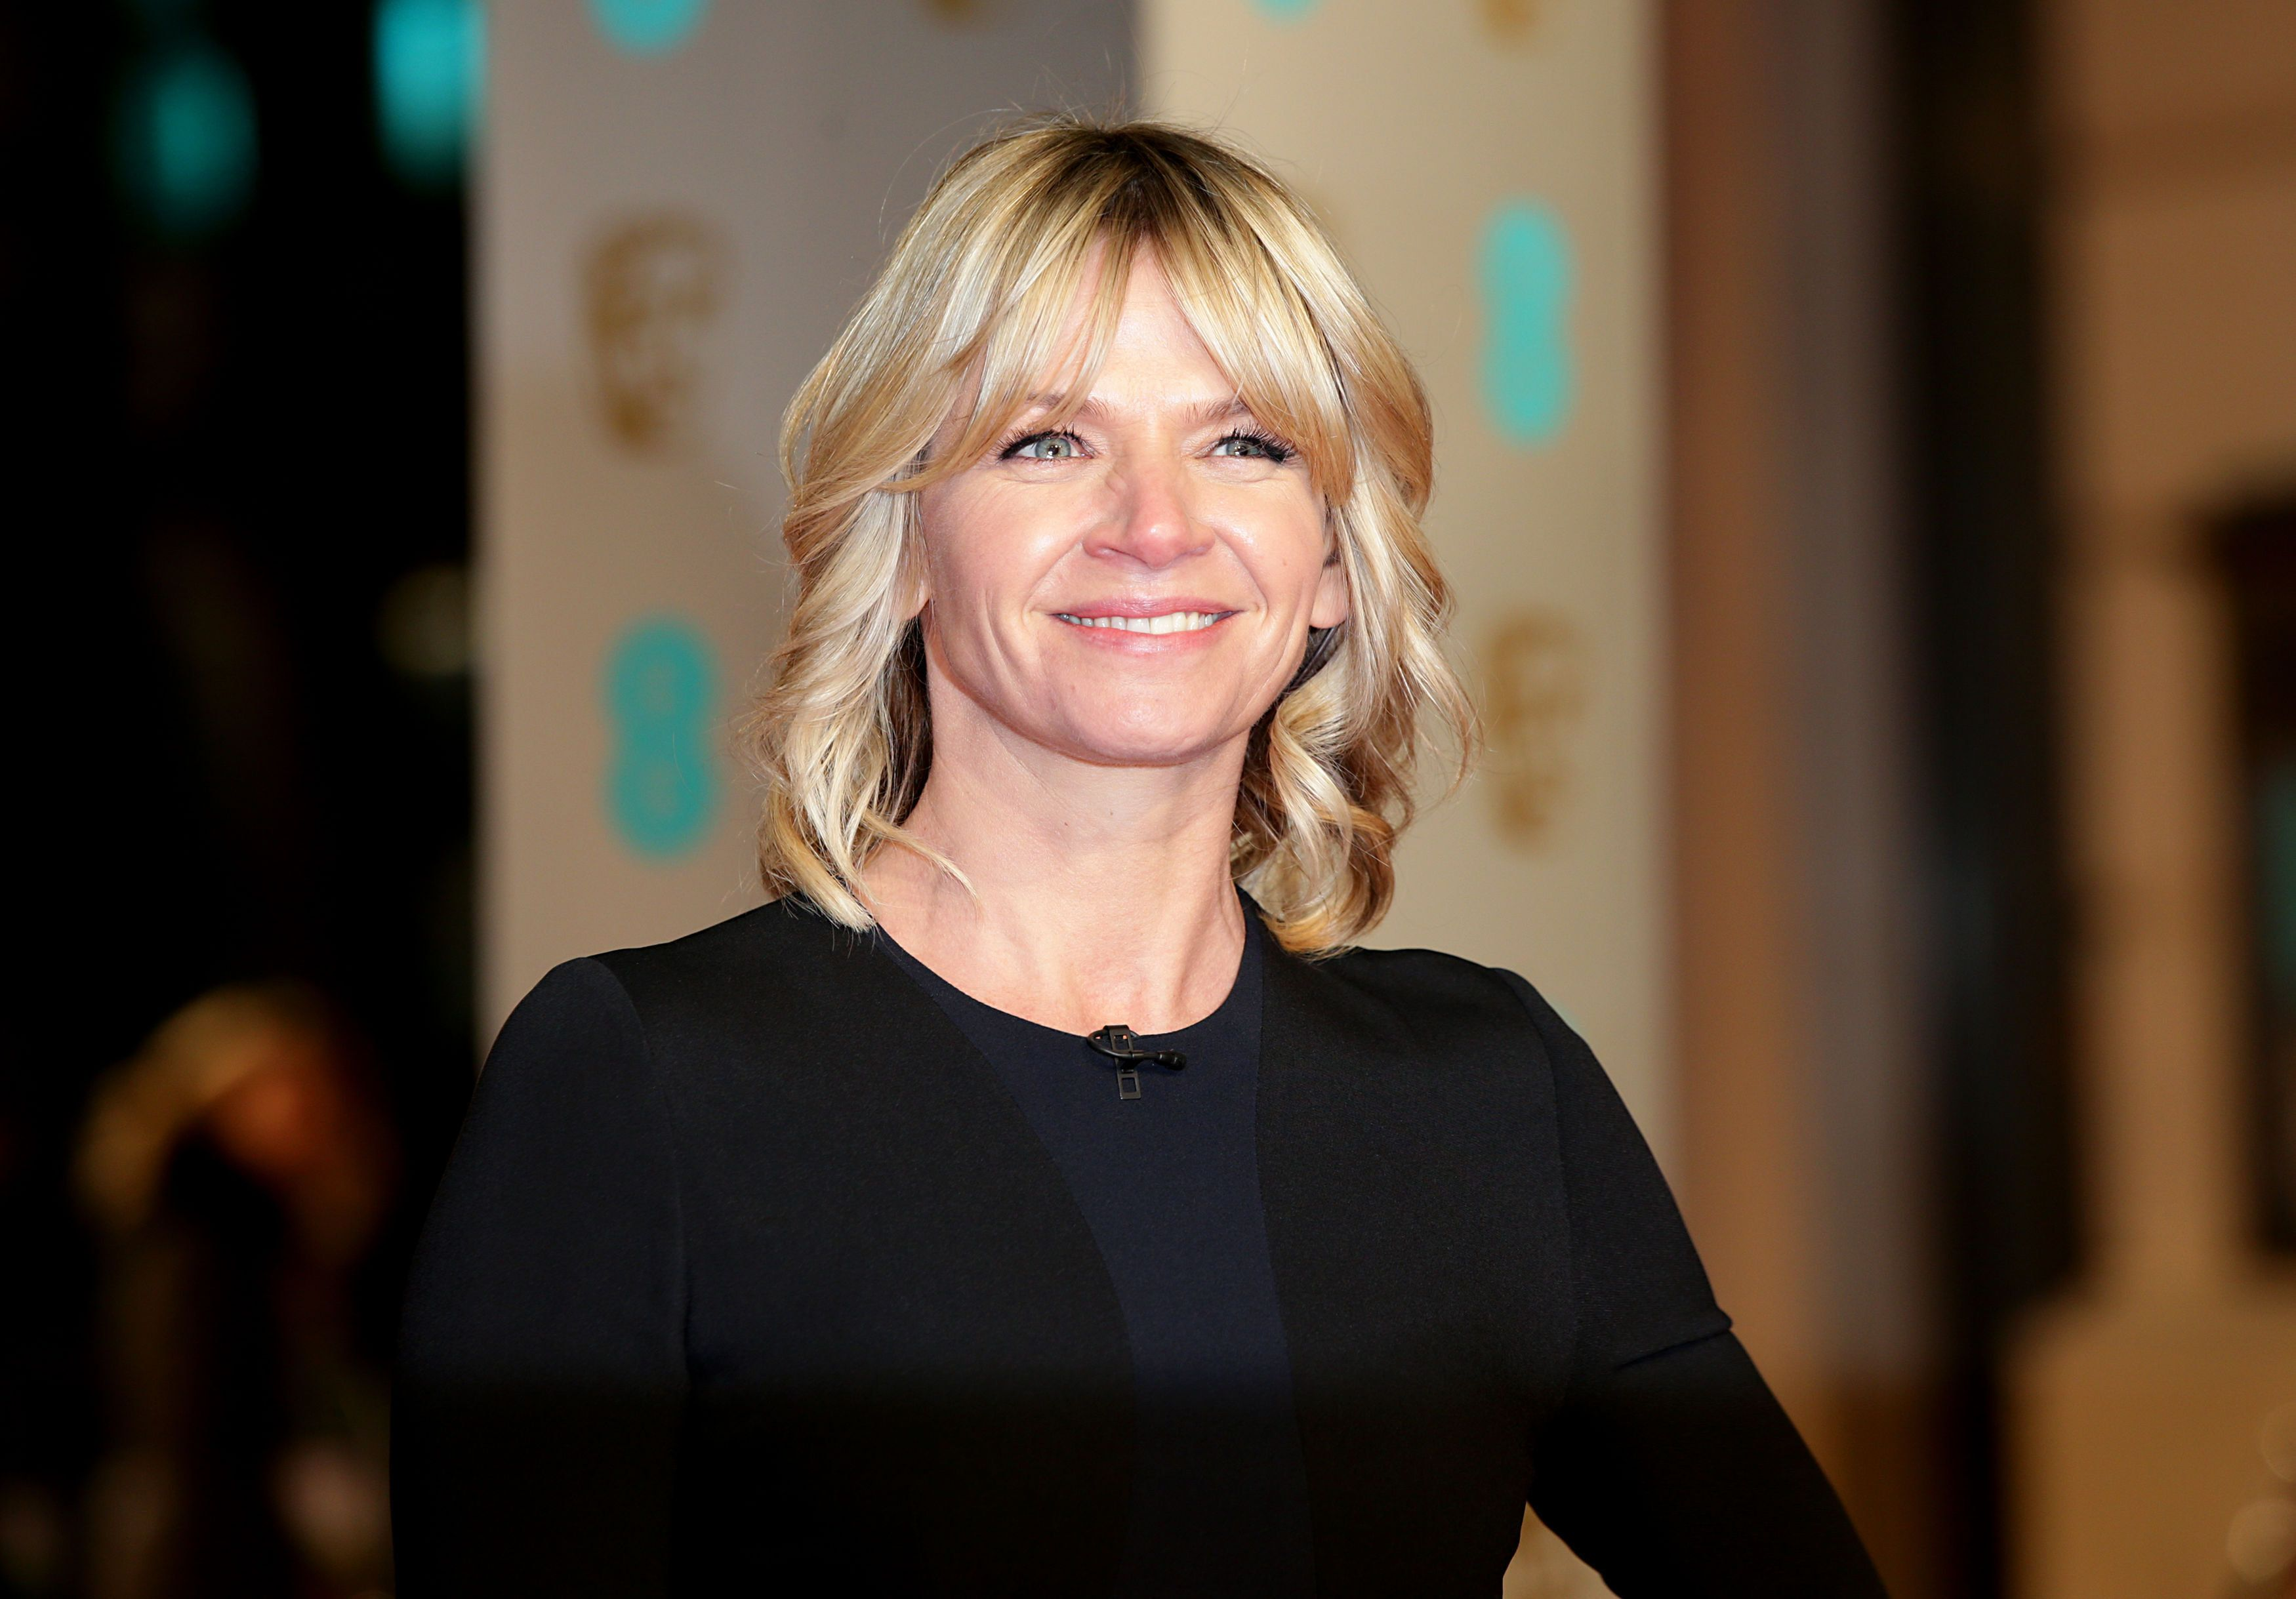 Zoe Ball Admits Two Years Of Sobriety Helped Her Through 'Two Toughest Years Of My